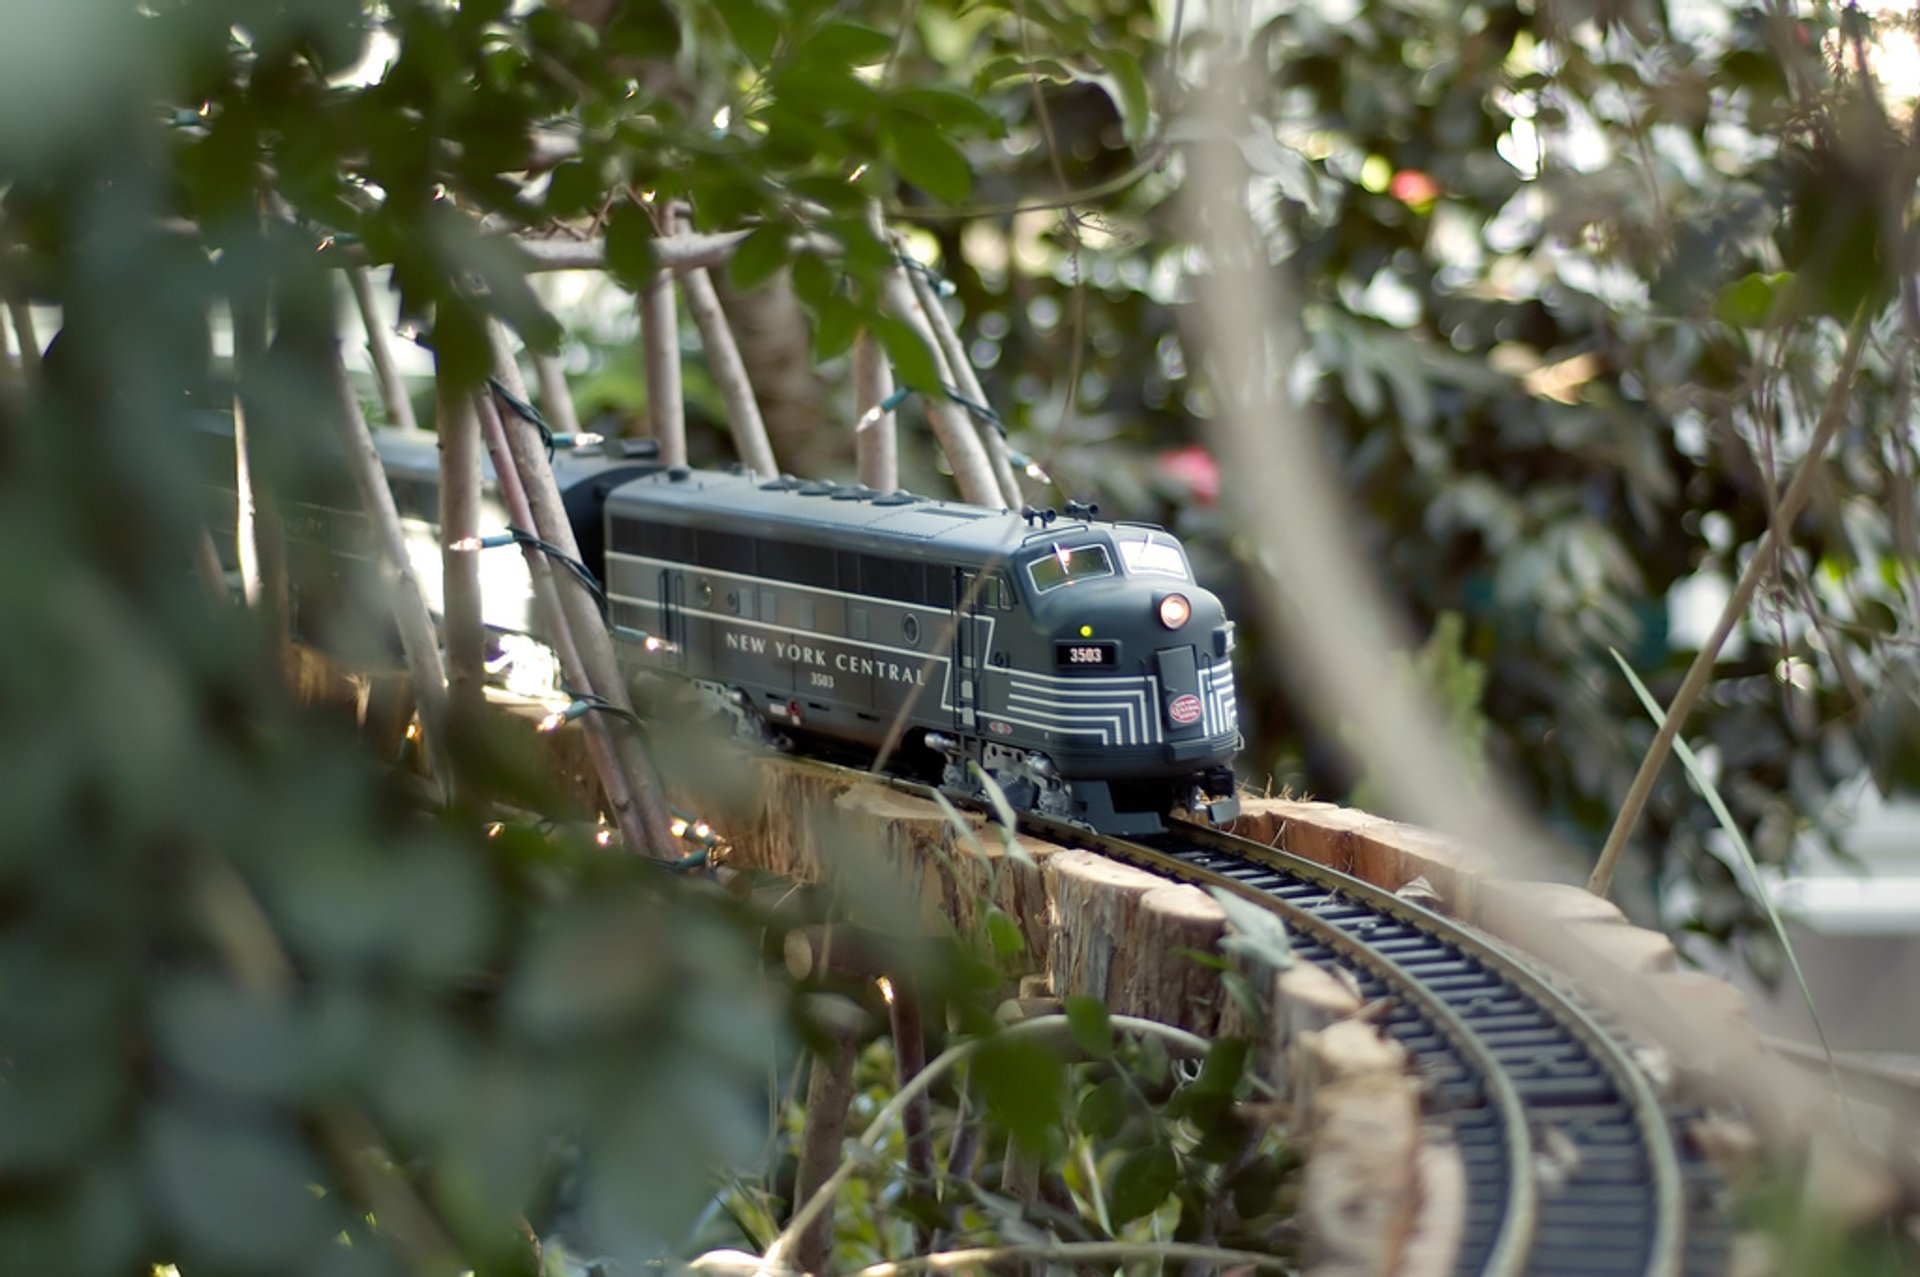 Holiday Train Show in New York 2020 - Best Time